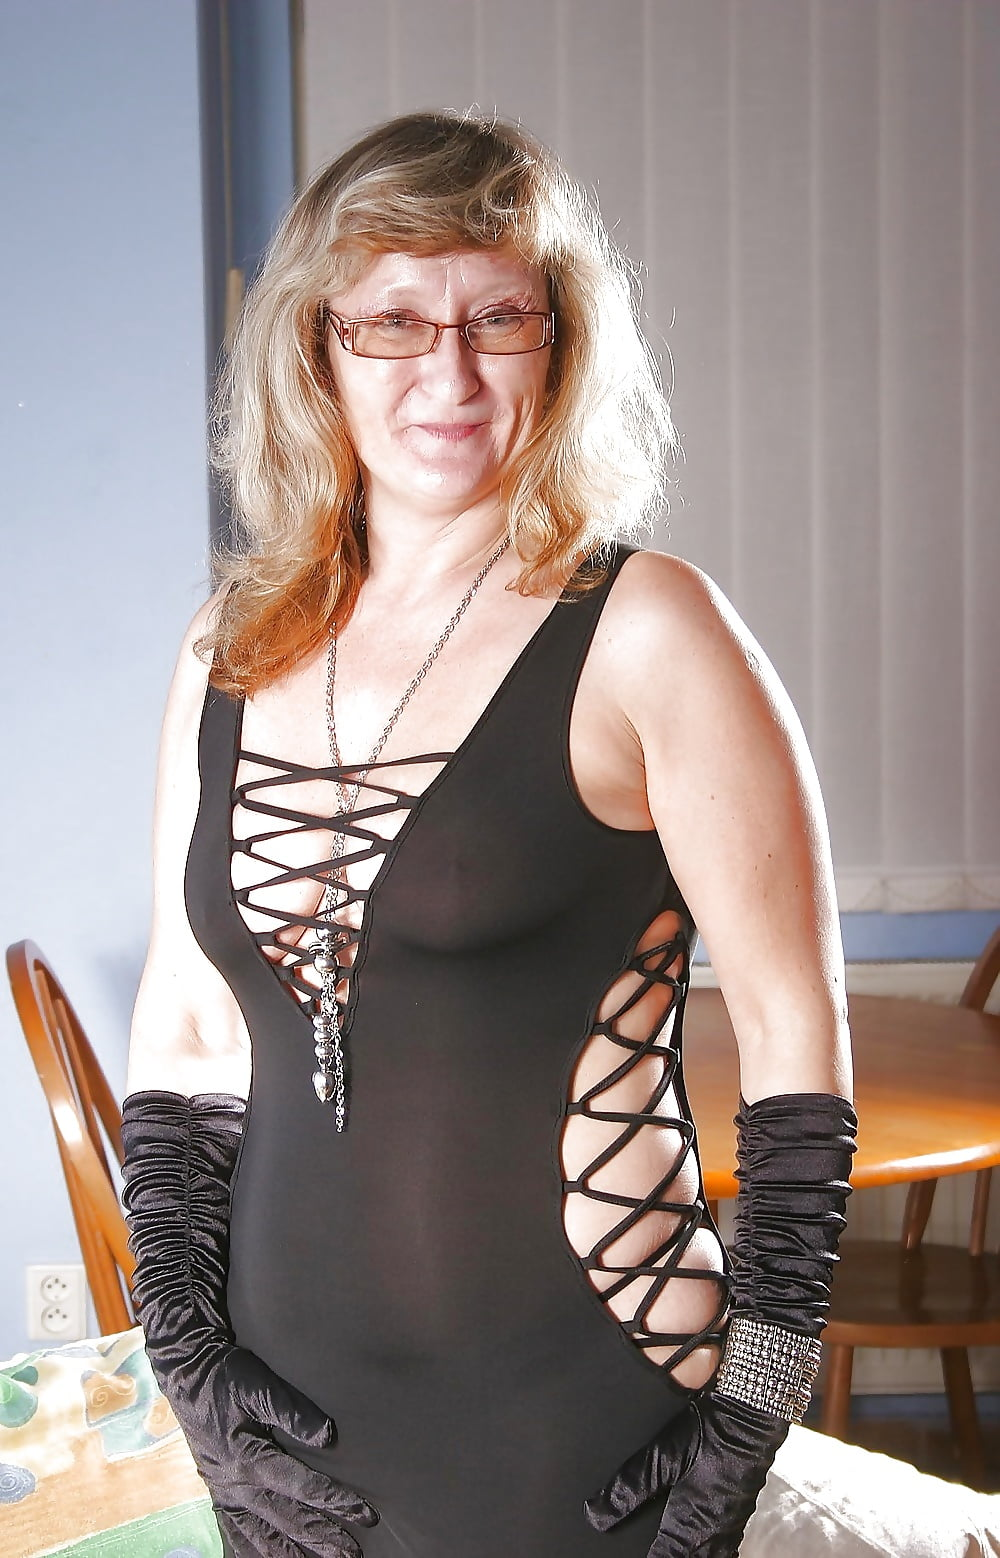 Ugly Old Women But With Big Tits - 28 Pics - Xhamstercom-4933